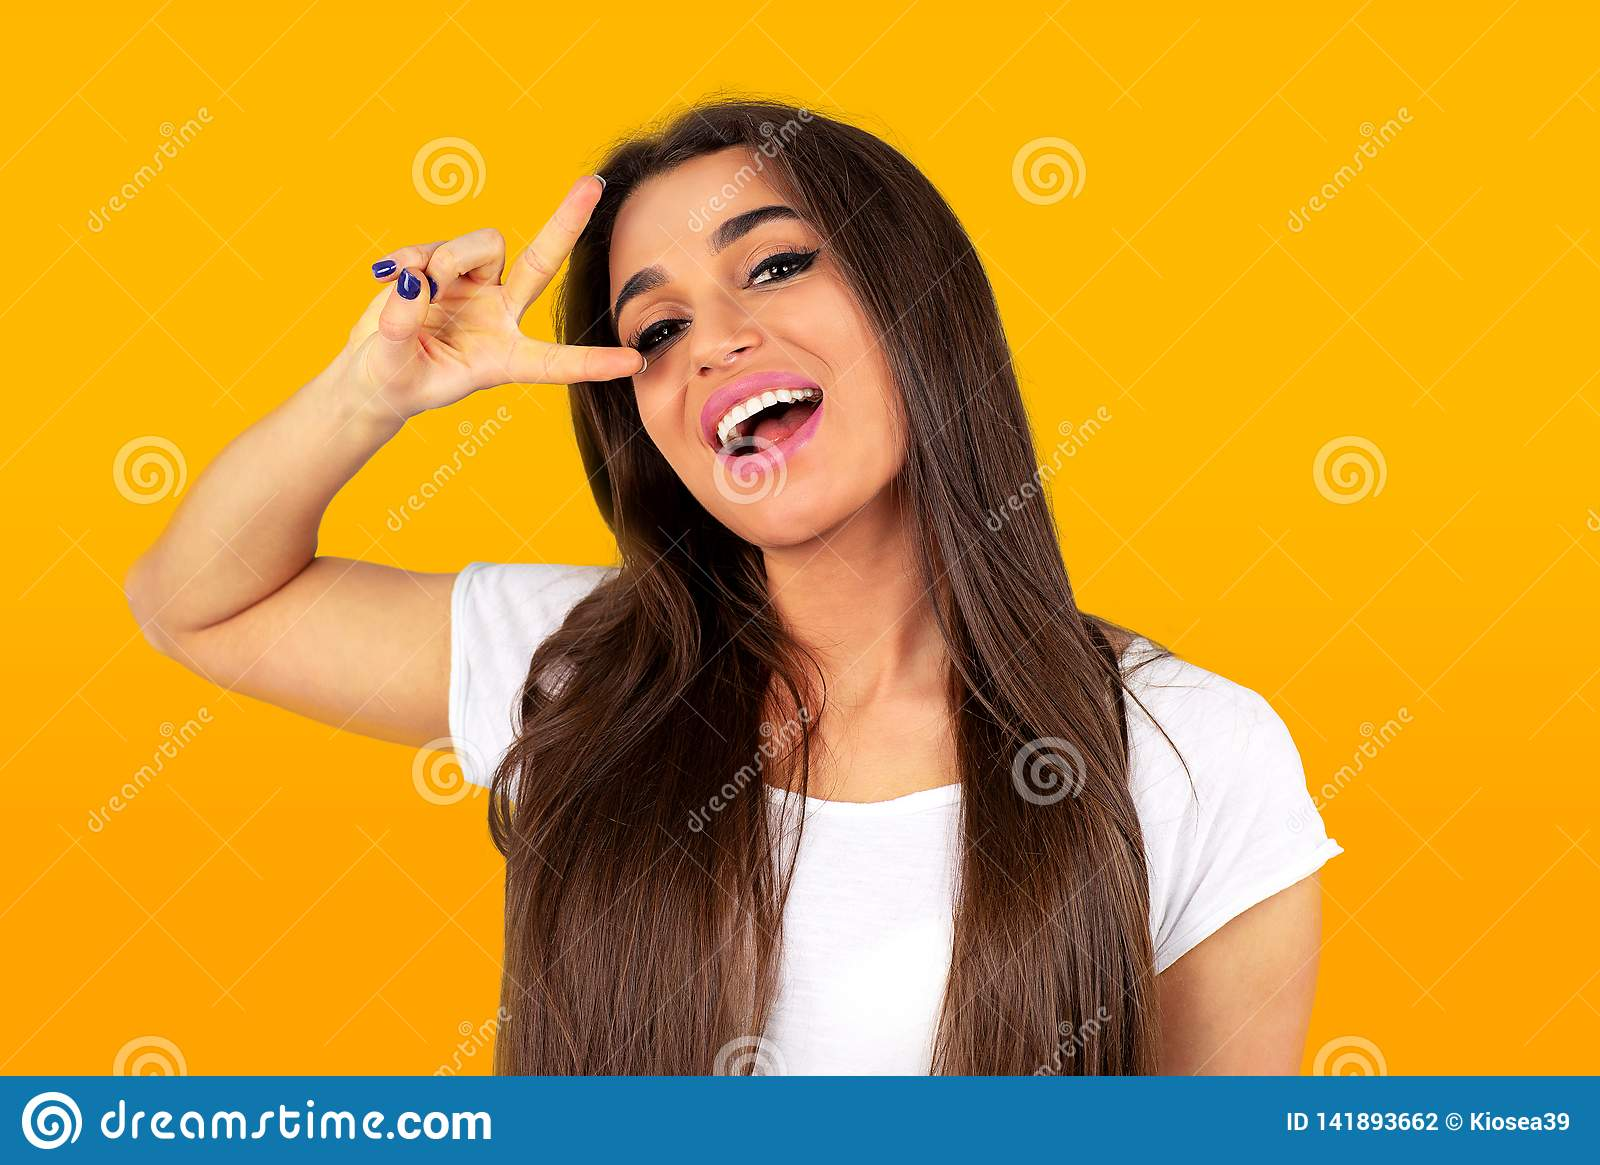 Happy young woman standing showing peace gesture and looking at camera